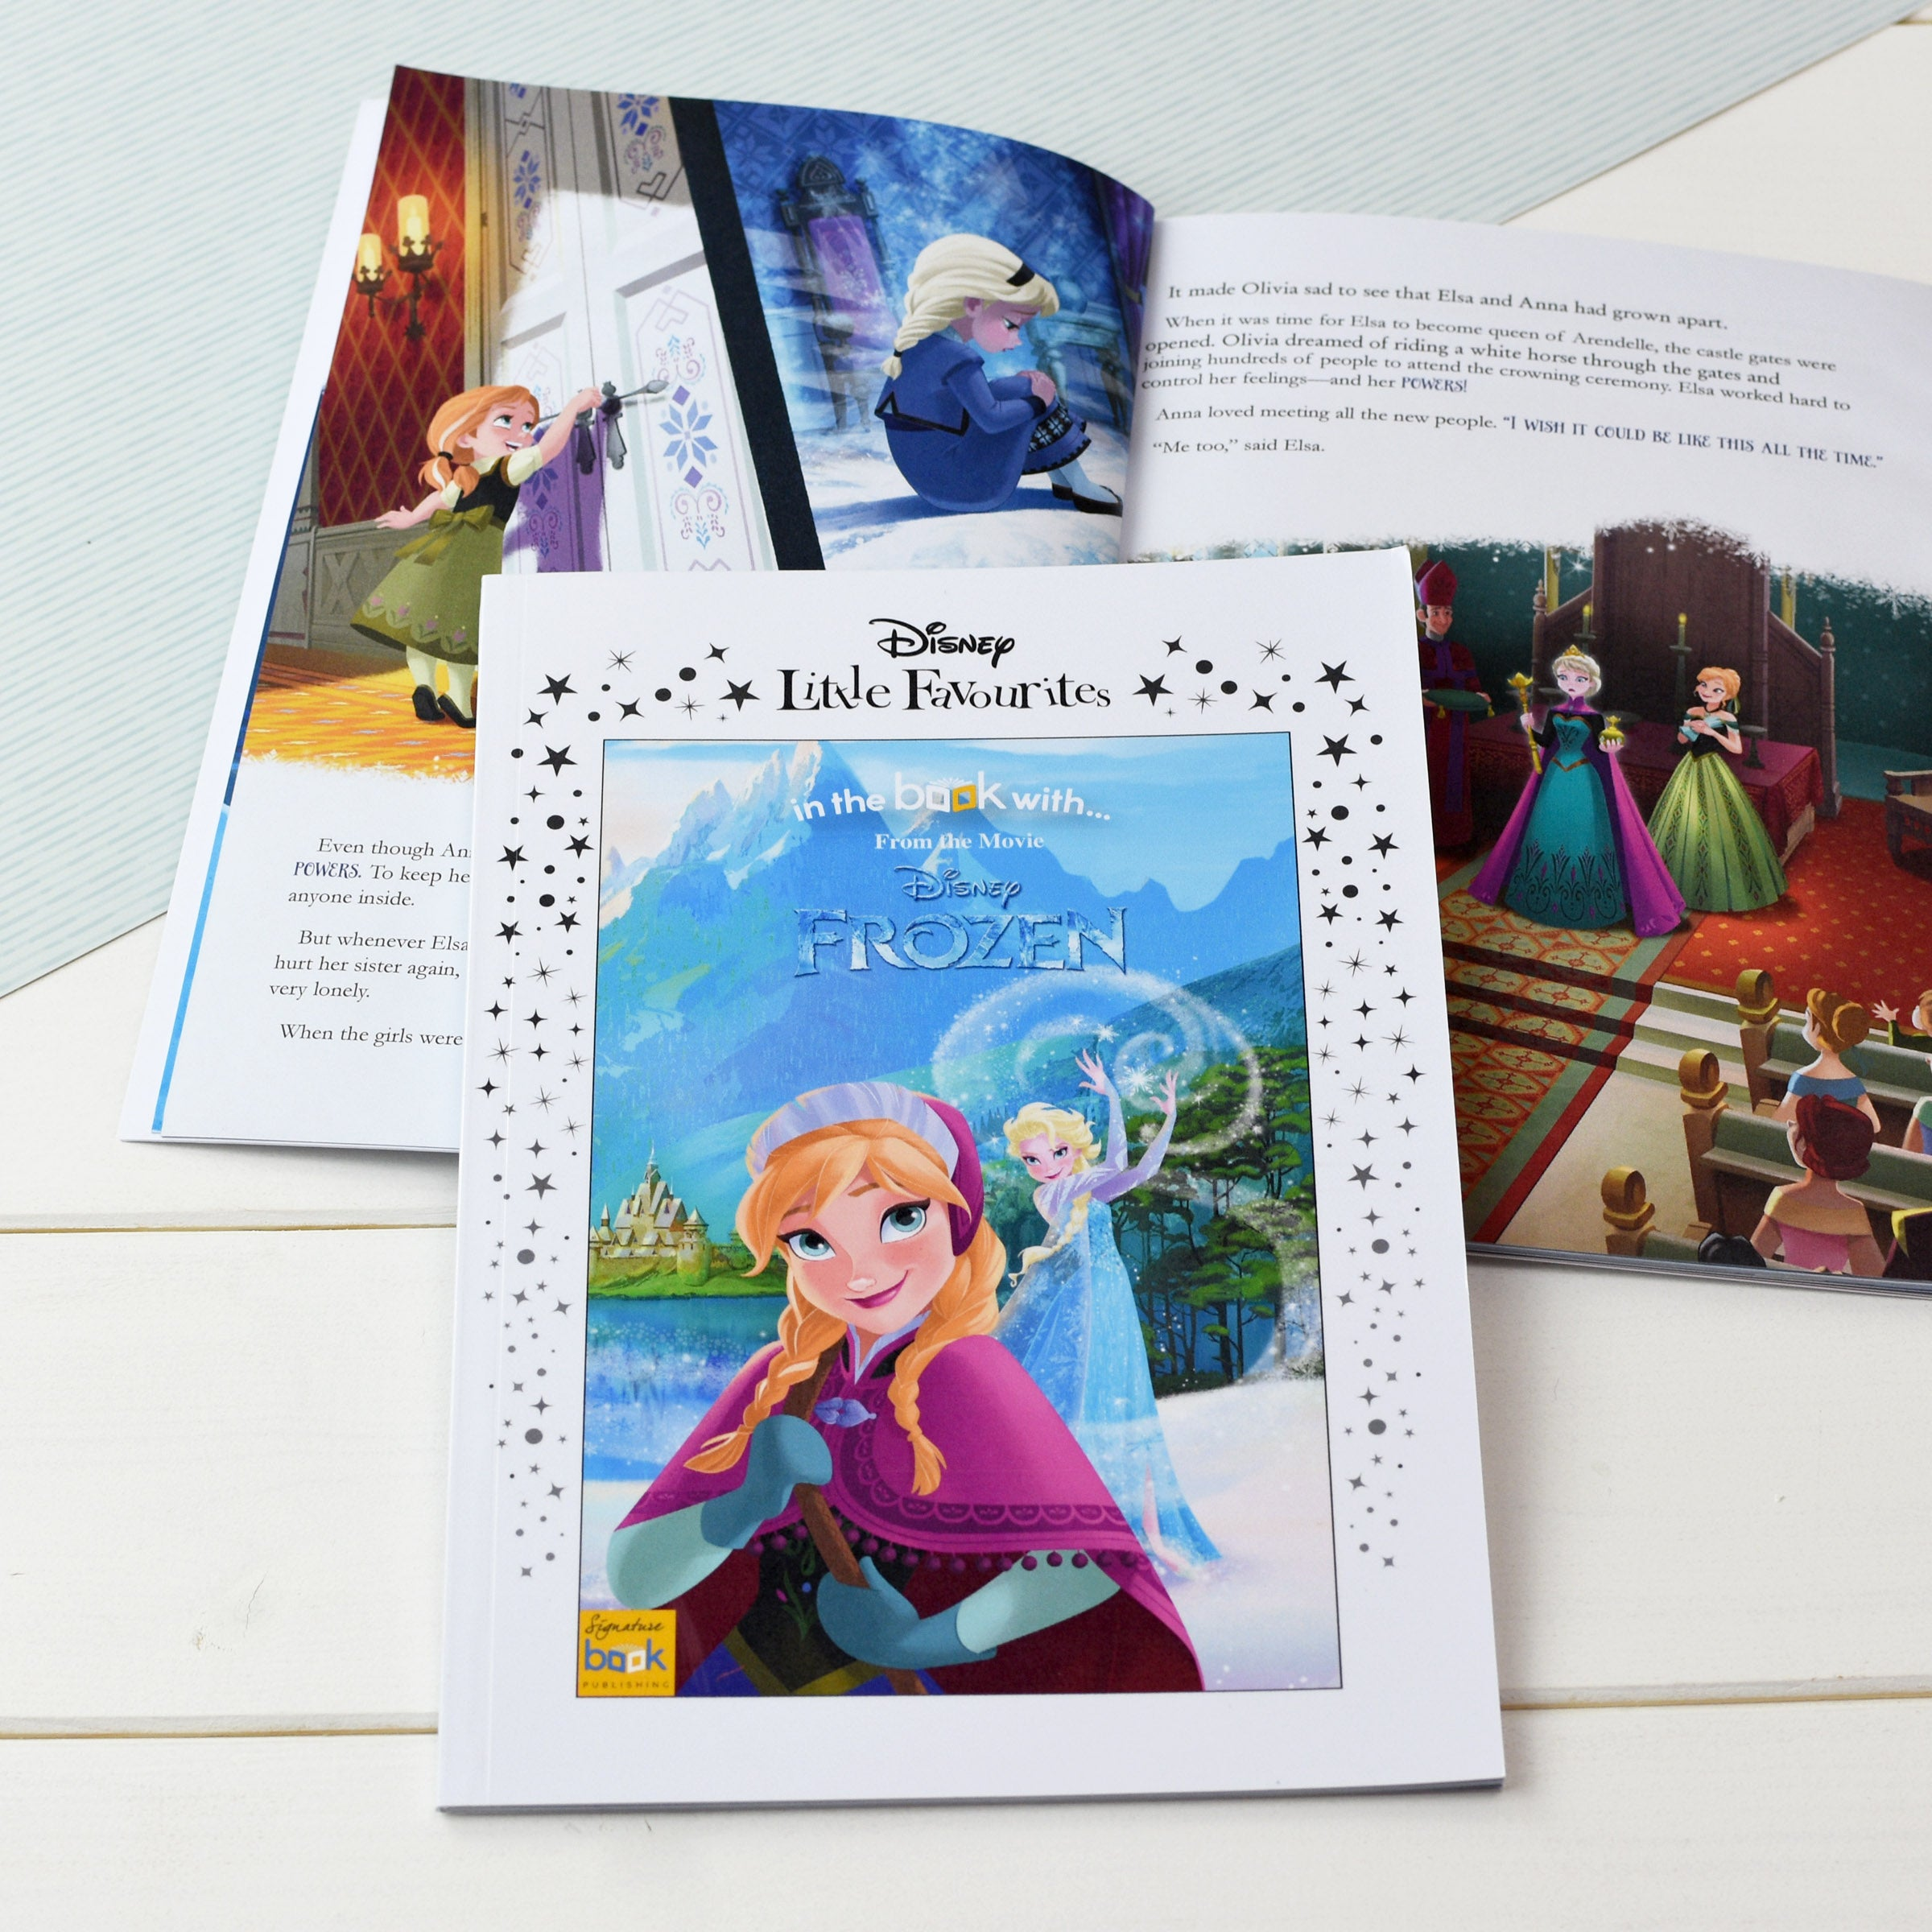 Disney Little Favourites Frozen, Media by Sports Gifts Direct